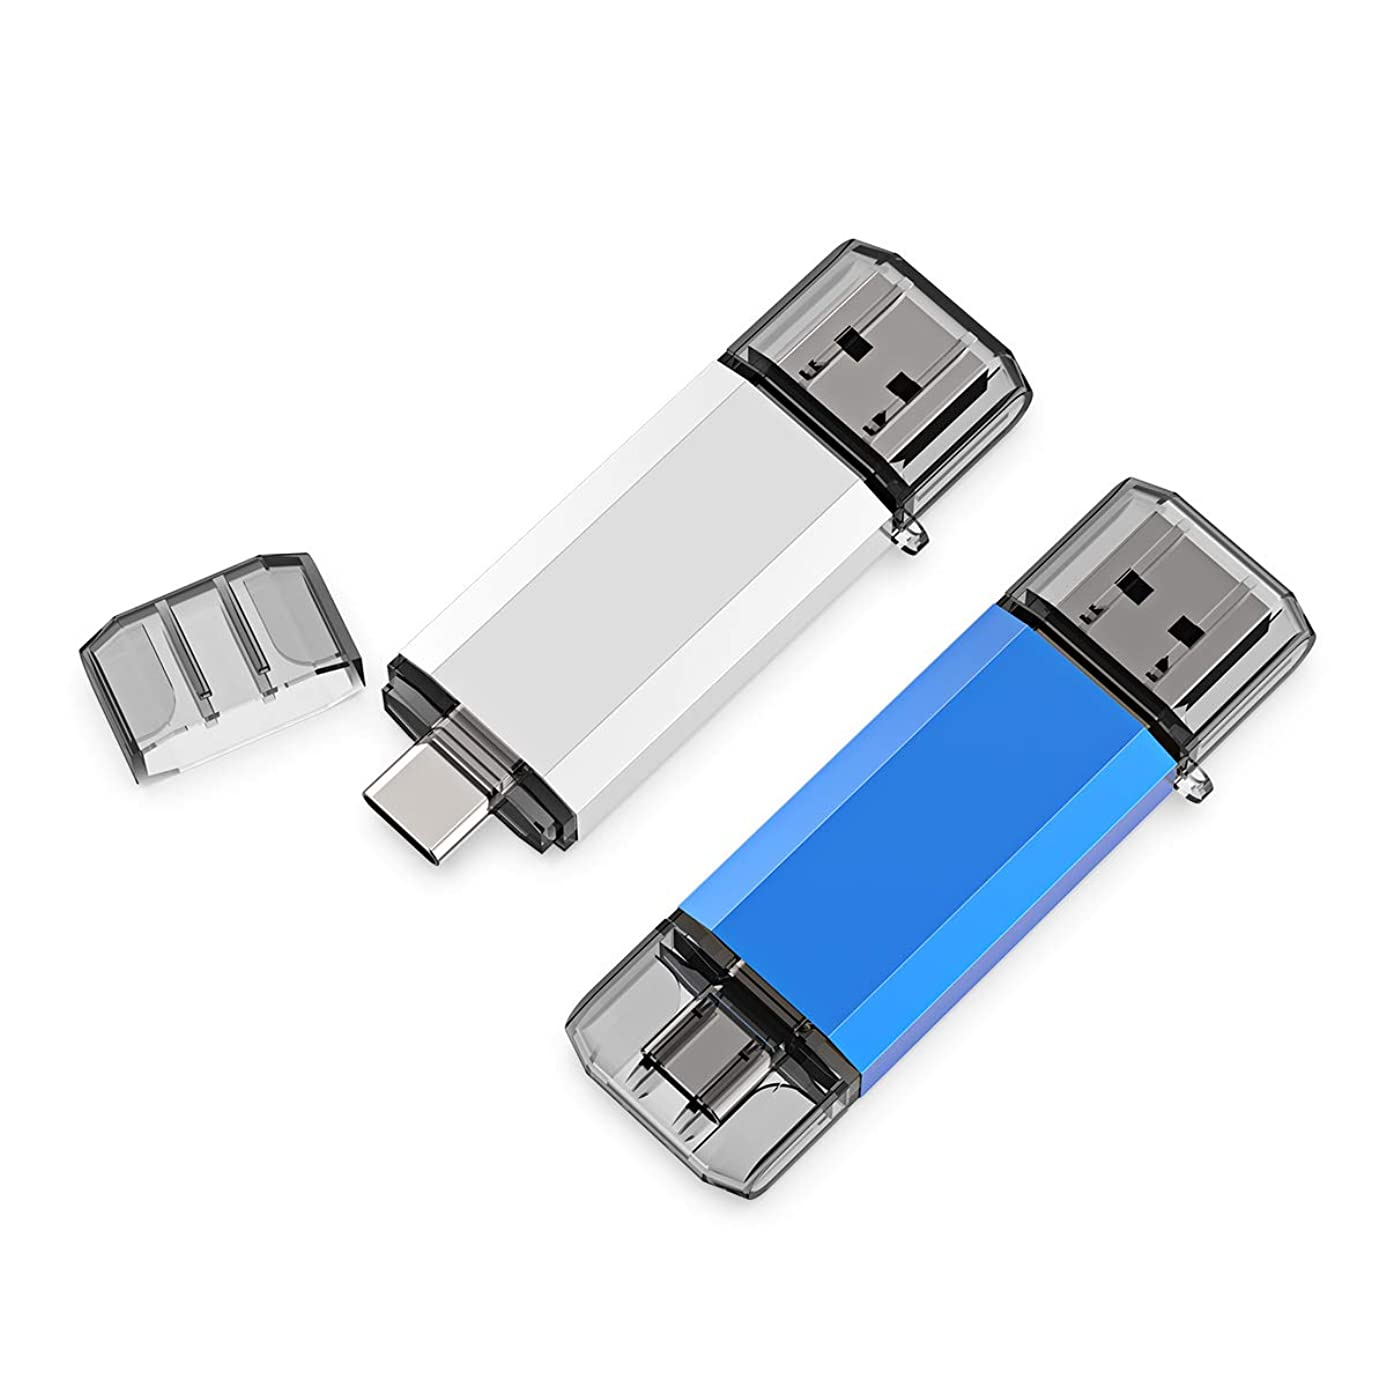 Aiibe 2 Pack 32GB USB 3.0 Type C Flash Drive High Speed Dual USB OTG Flash Drives Memory Stick Thumb Drive for Computers & USB-C Smartphones (2 Mixed Colors: Blue Silver)